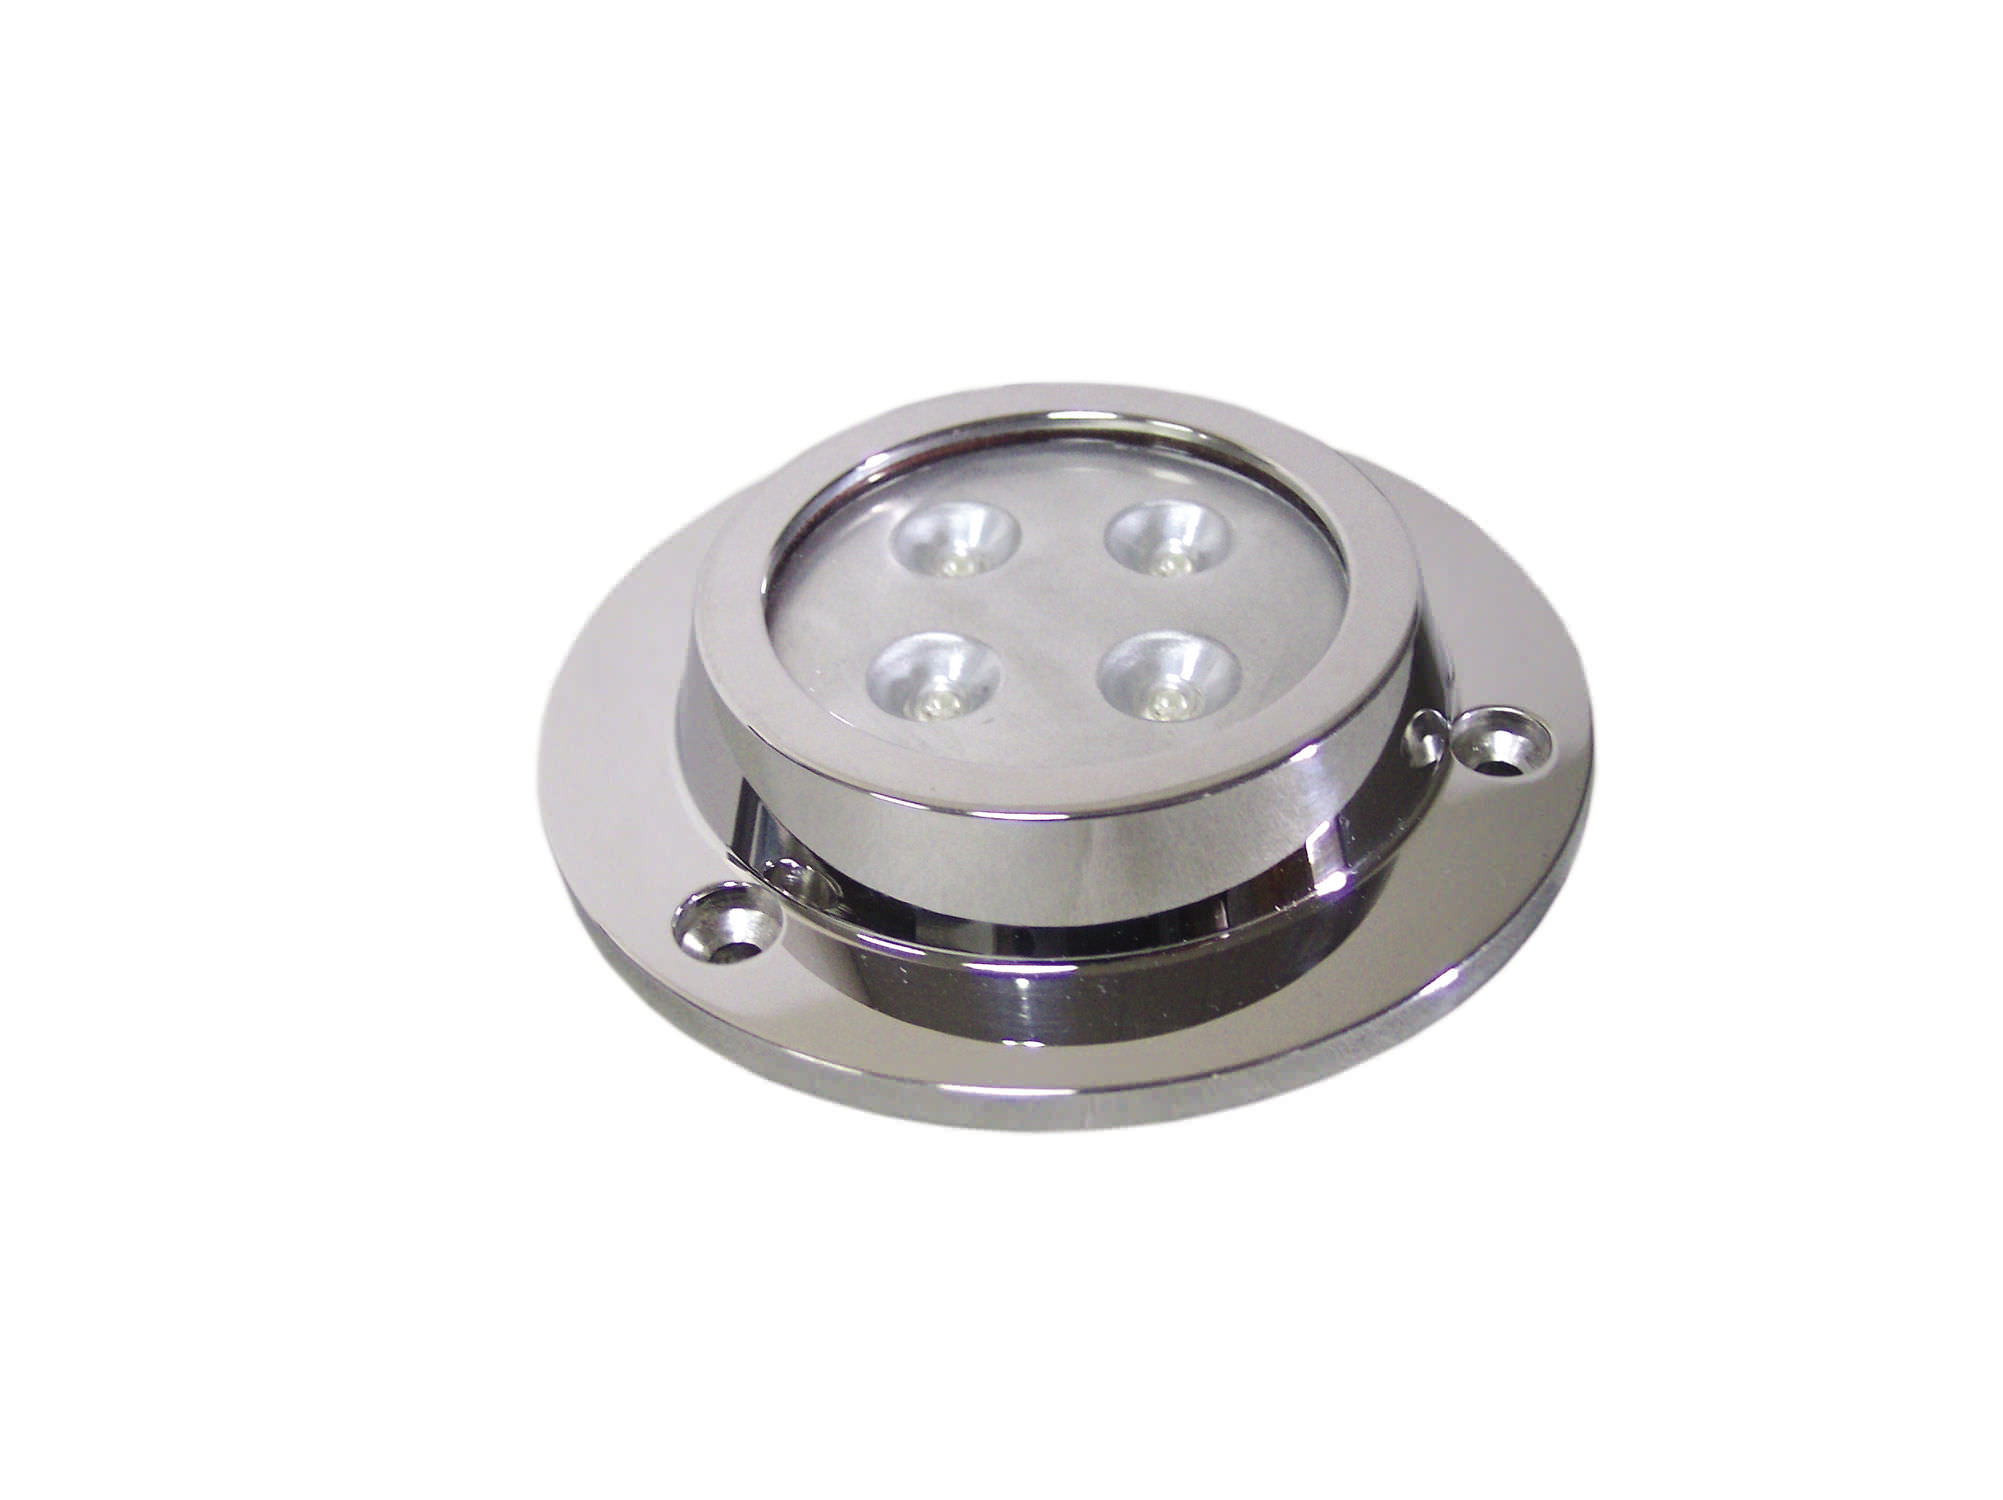 underwater boat light / LED / surface-mount - 00299  sc 1 st  NauticExpo & Underwater boat light / LED / surface-mount - 00299 - AAA WORLD-WIDE ...